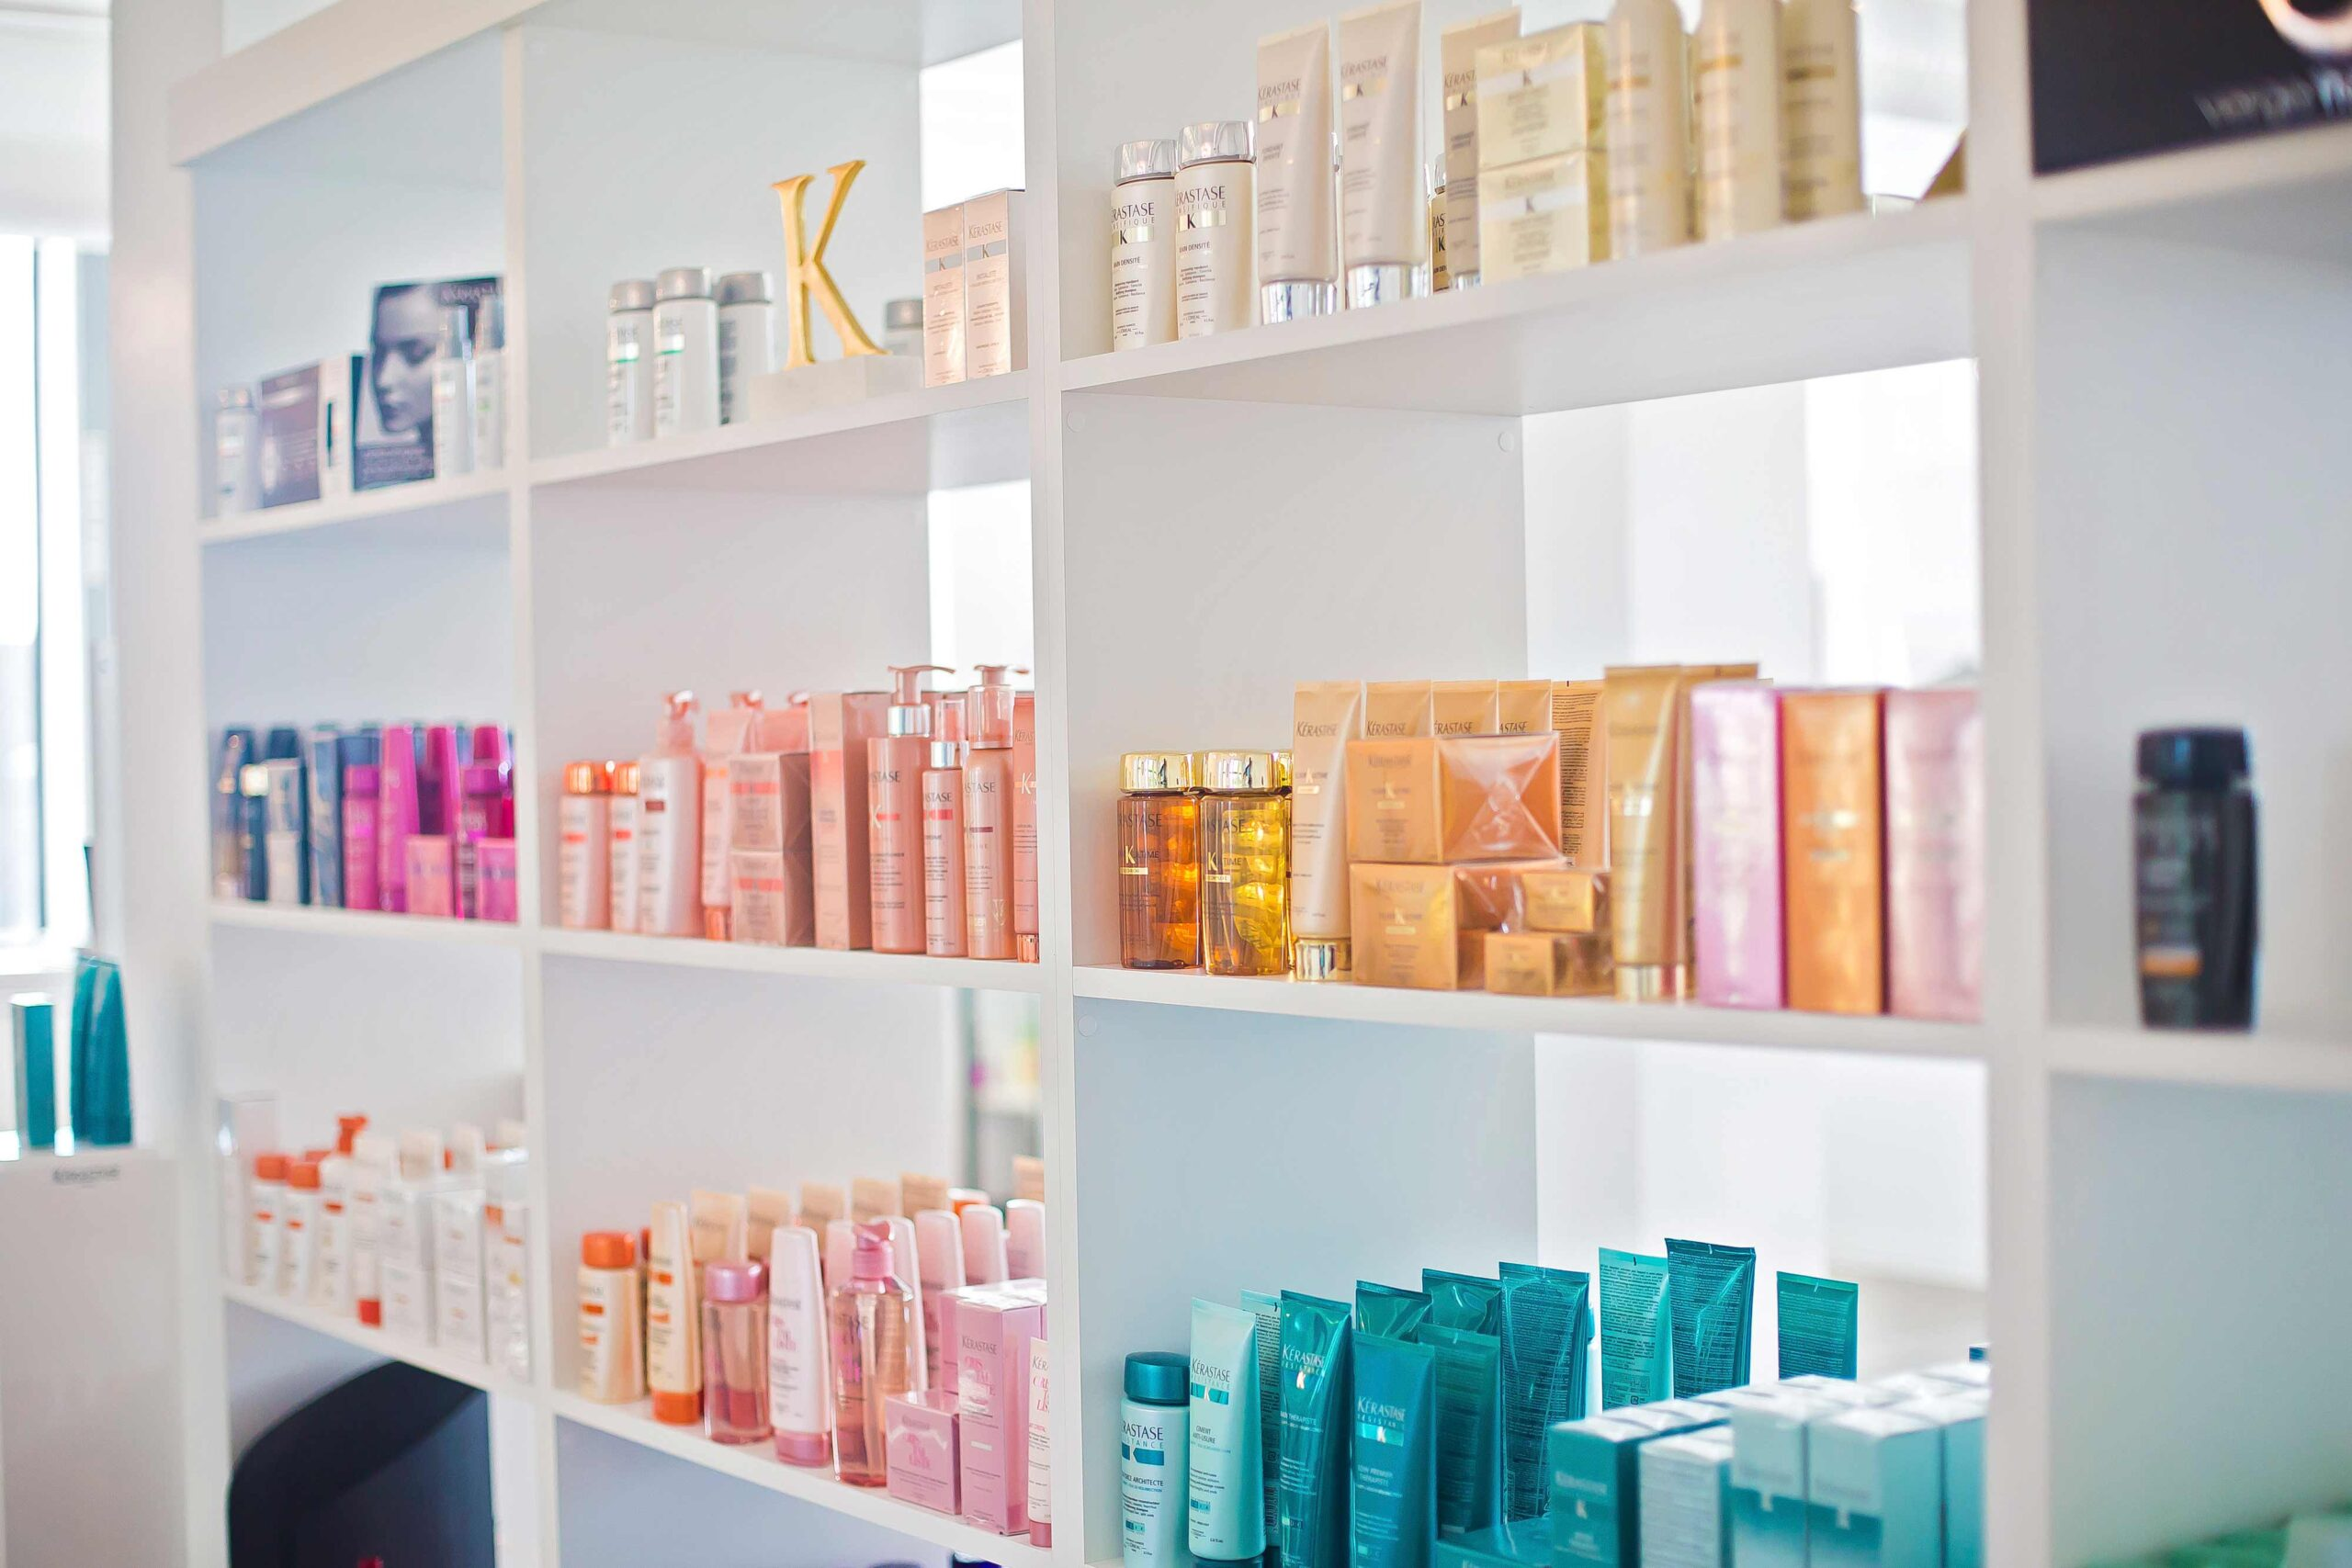 Luxe - Our full collection of Keratase products